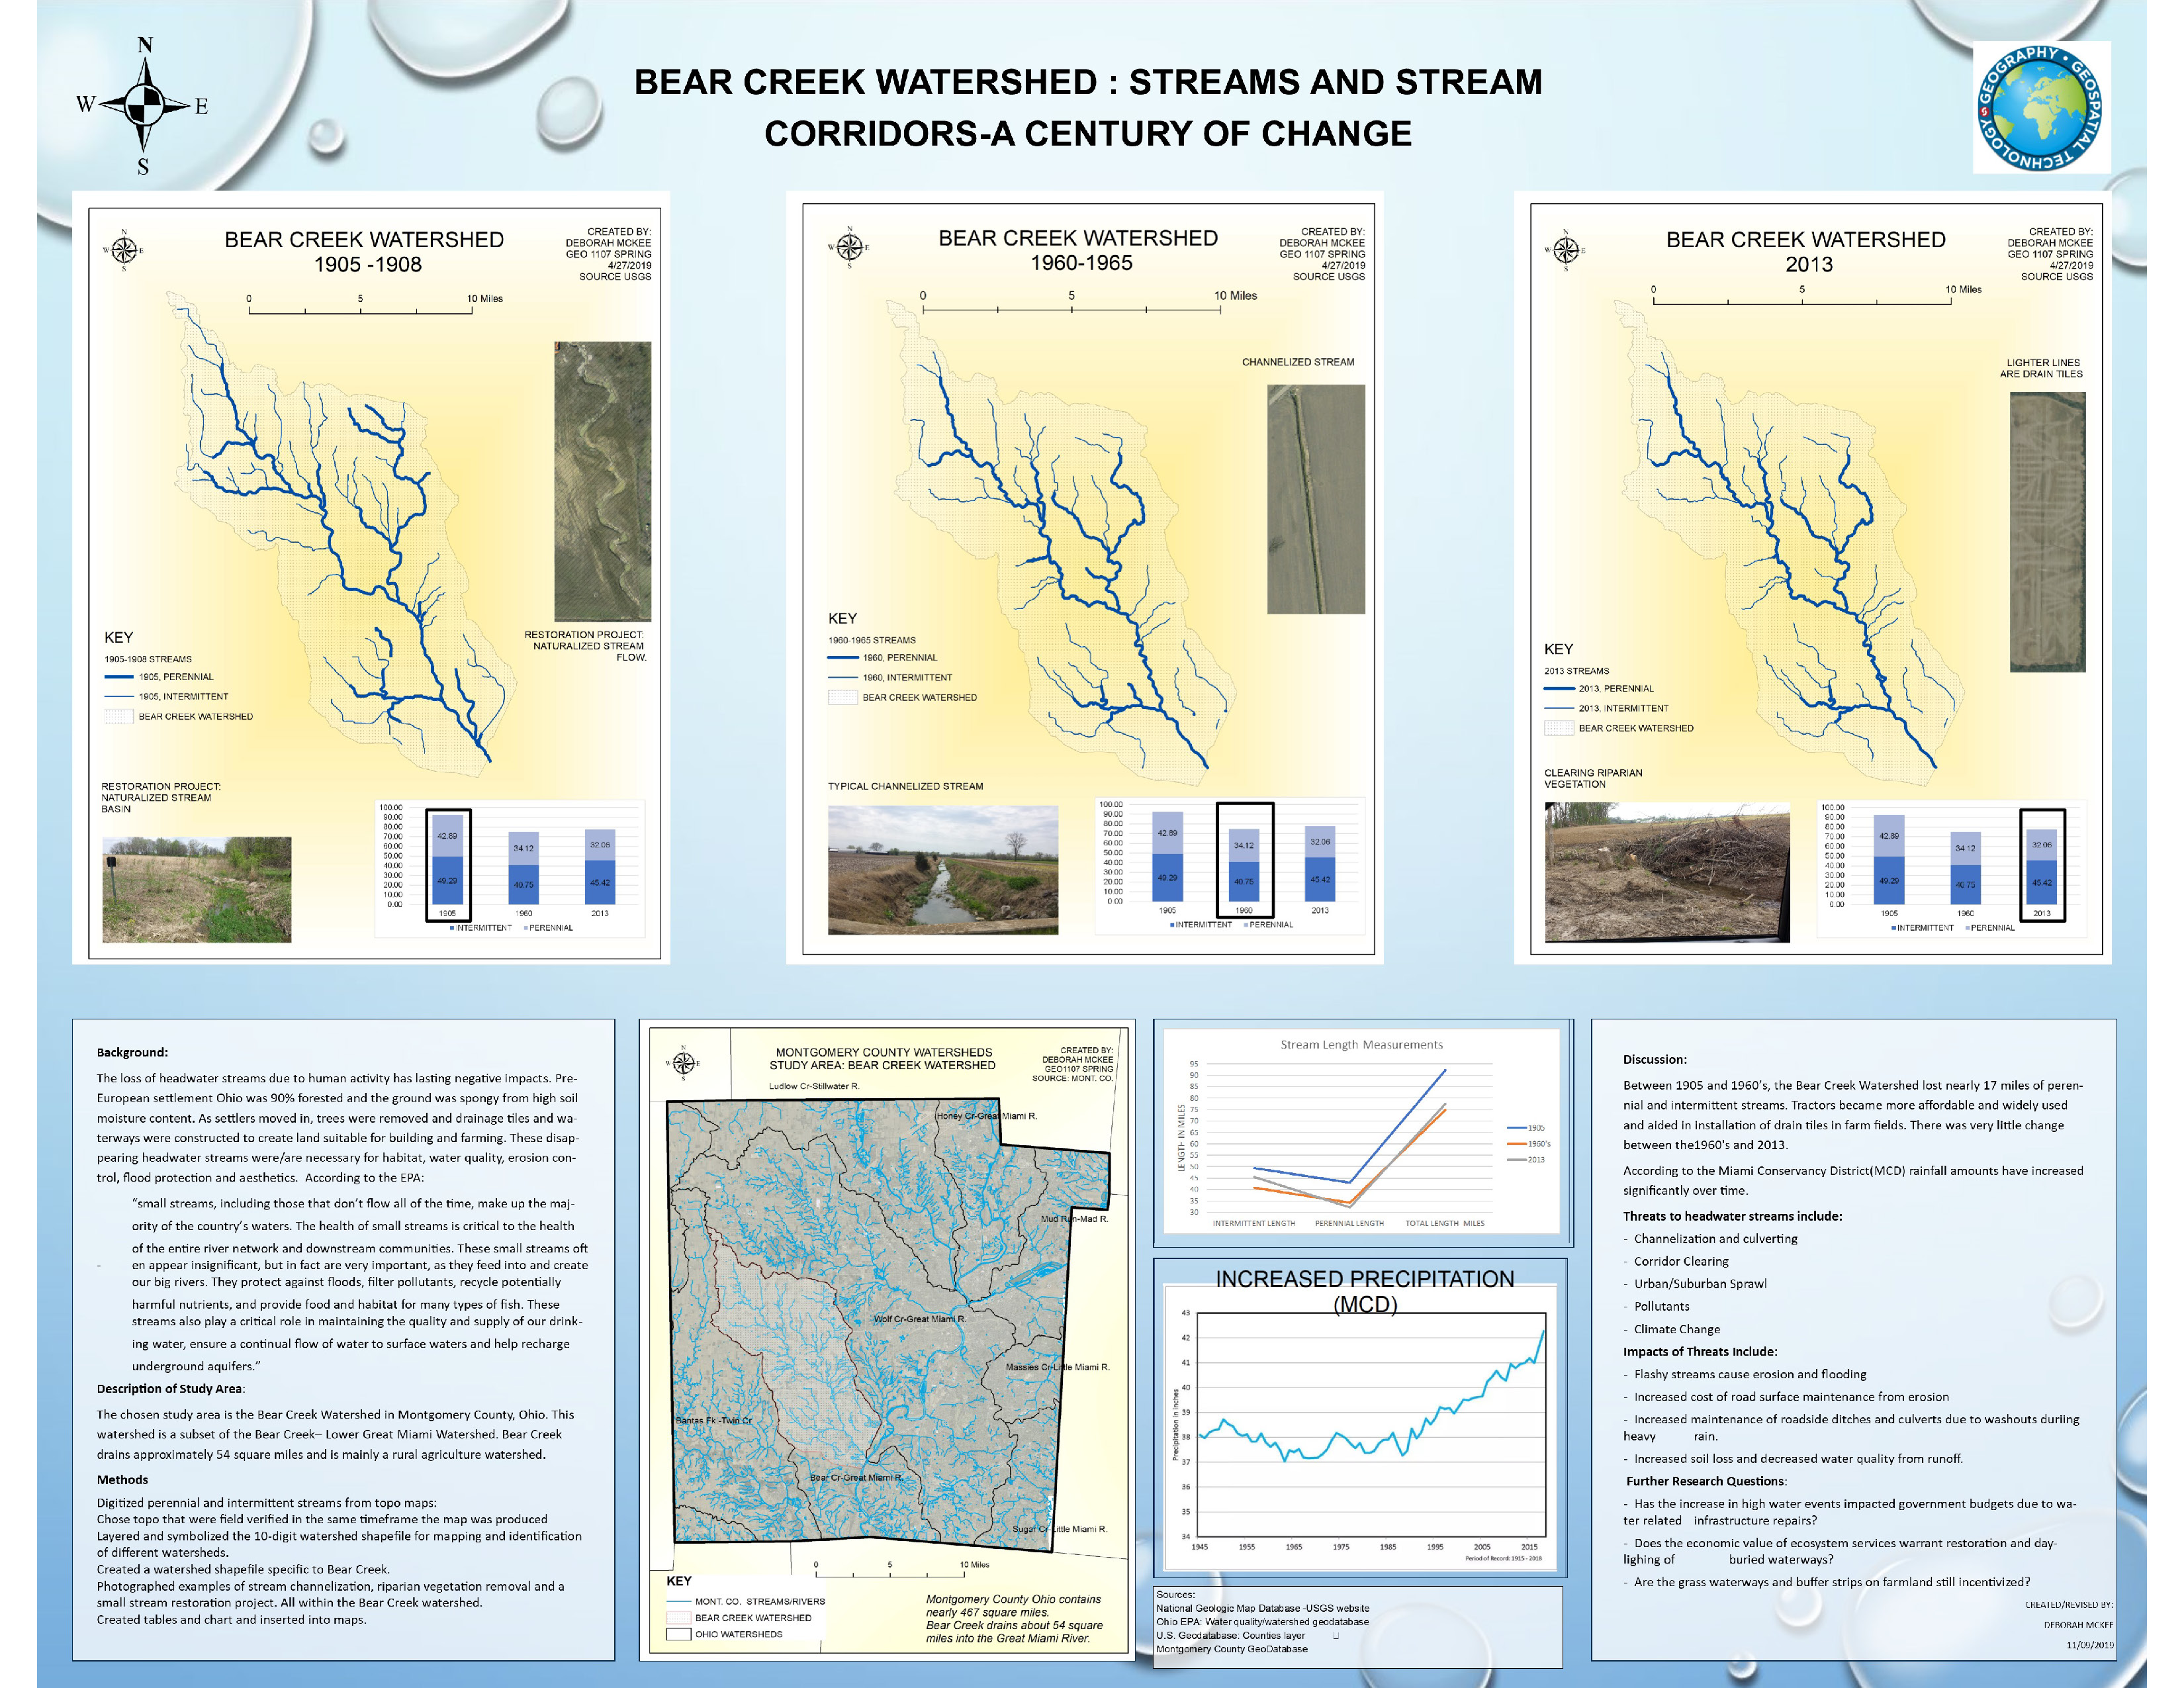 C2. Bear Creek Watershed: Streams and Stream Corridors - A Century of Change poster